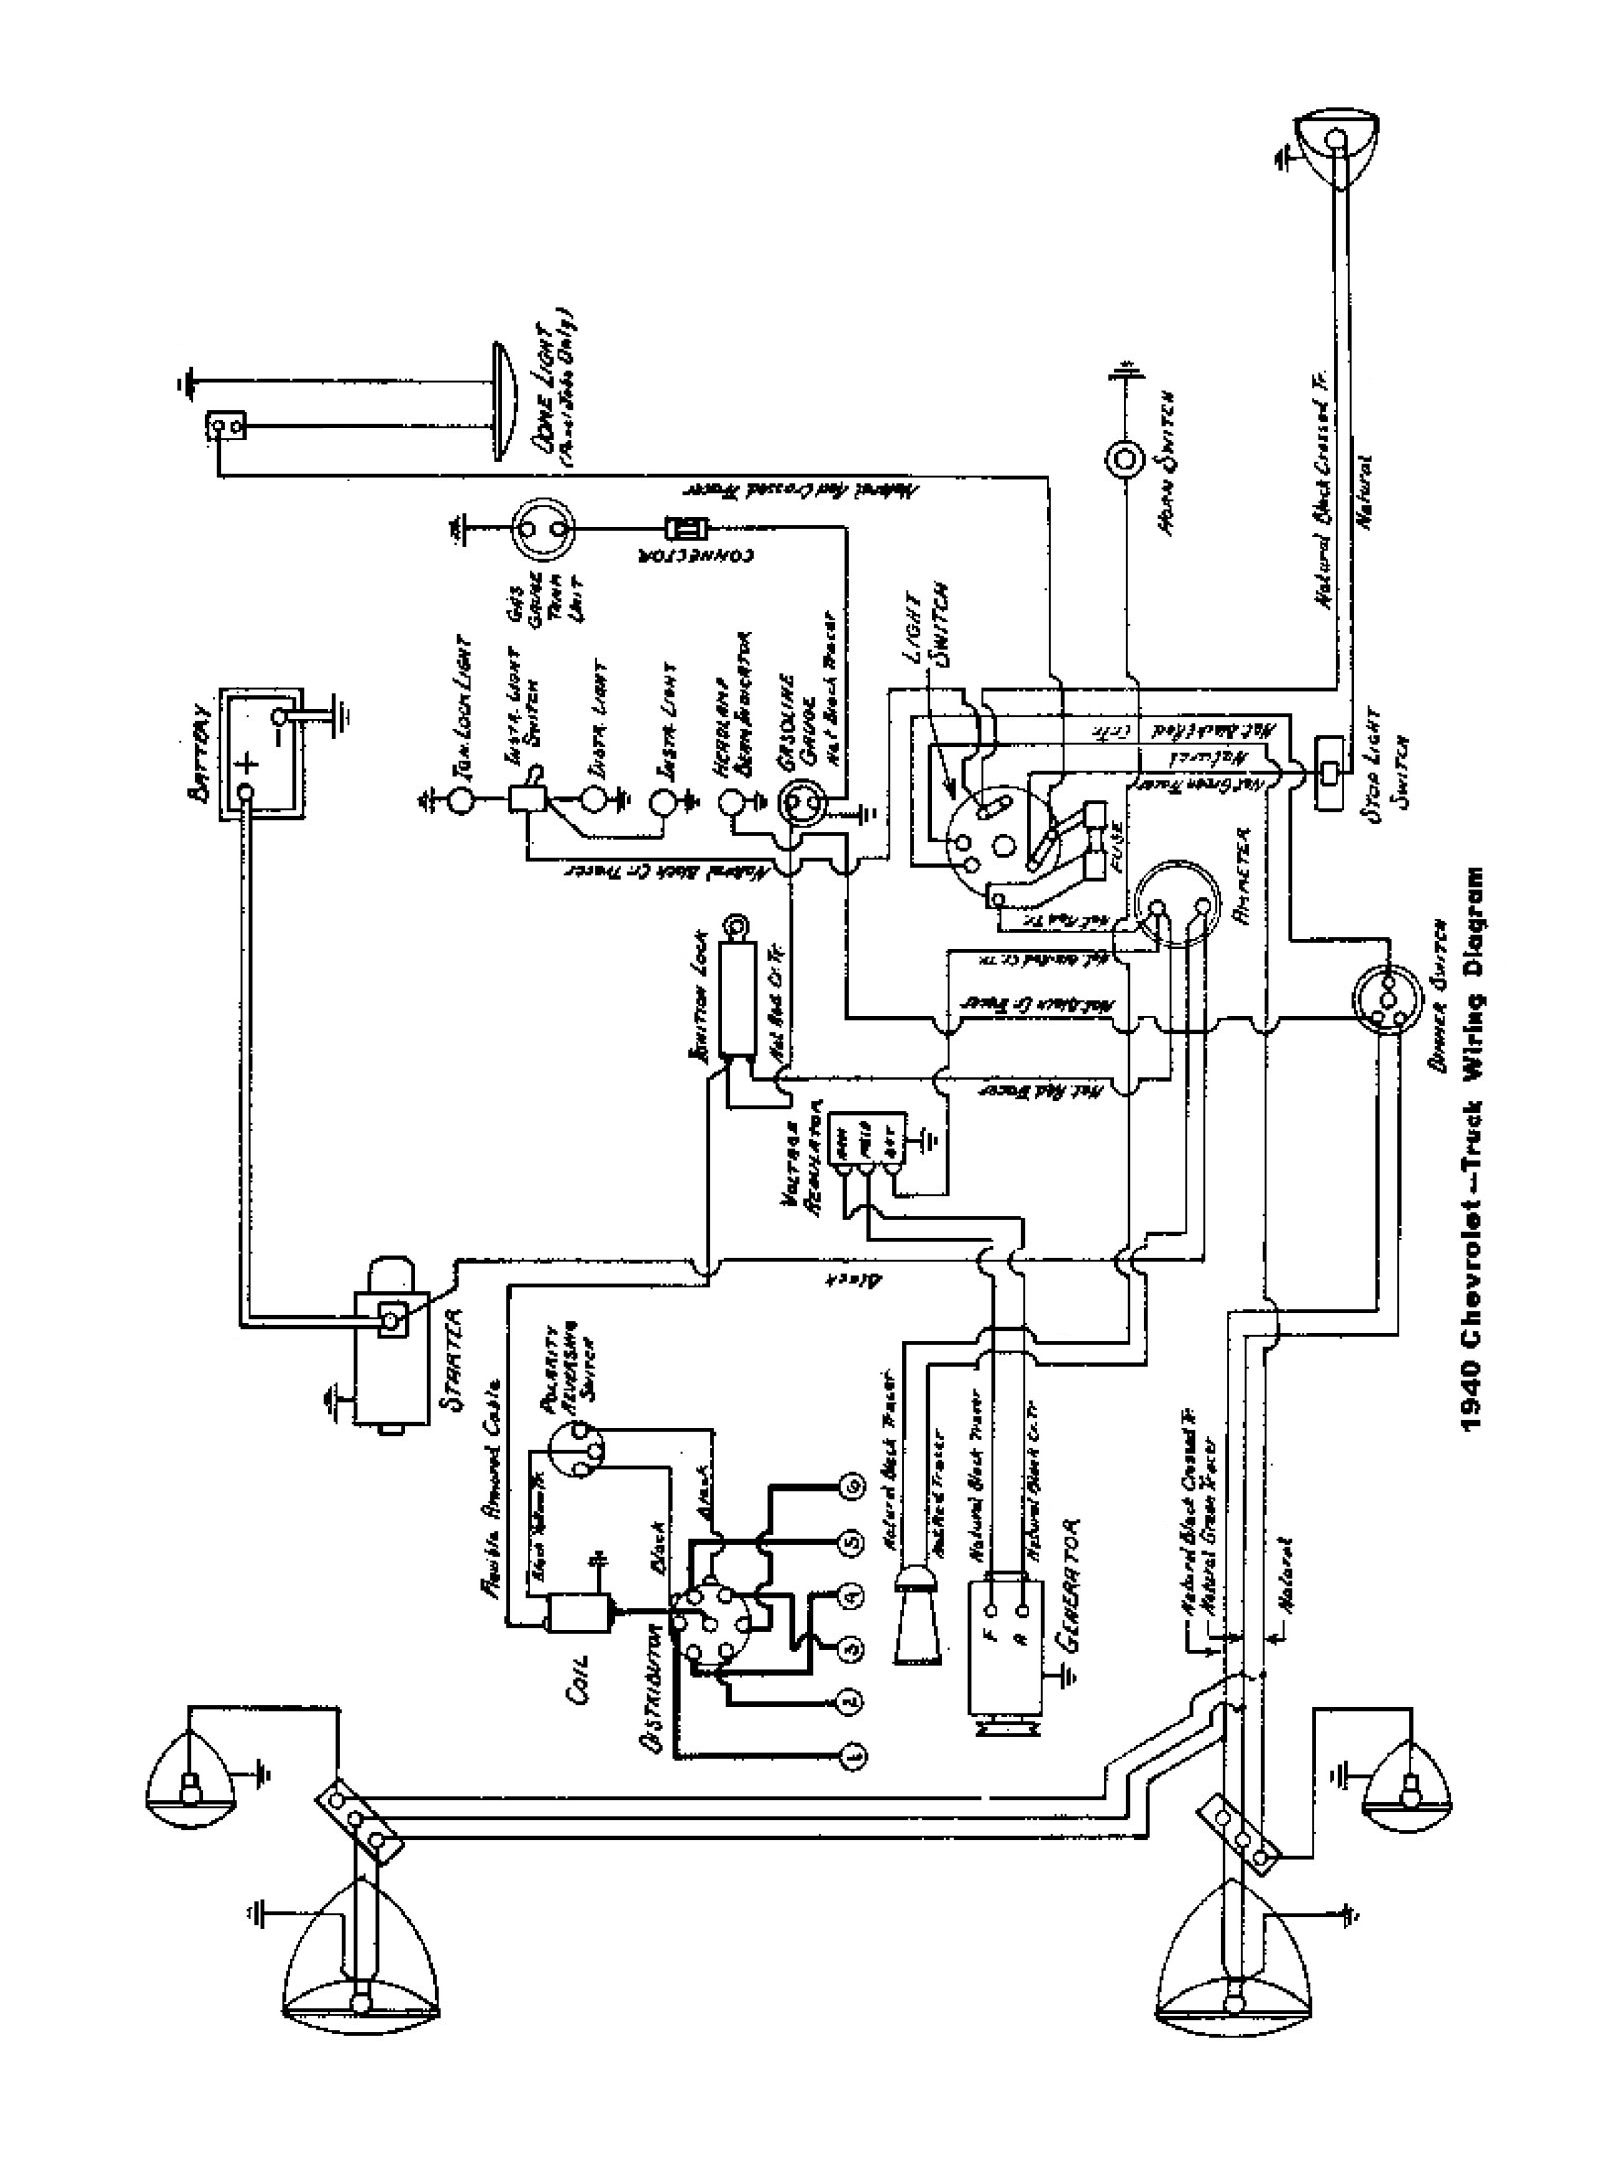 chevy wiring diagrams chevy truck wiring diagram download at Chevy Truck Wiring Diagram